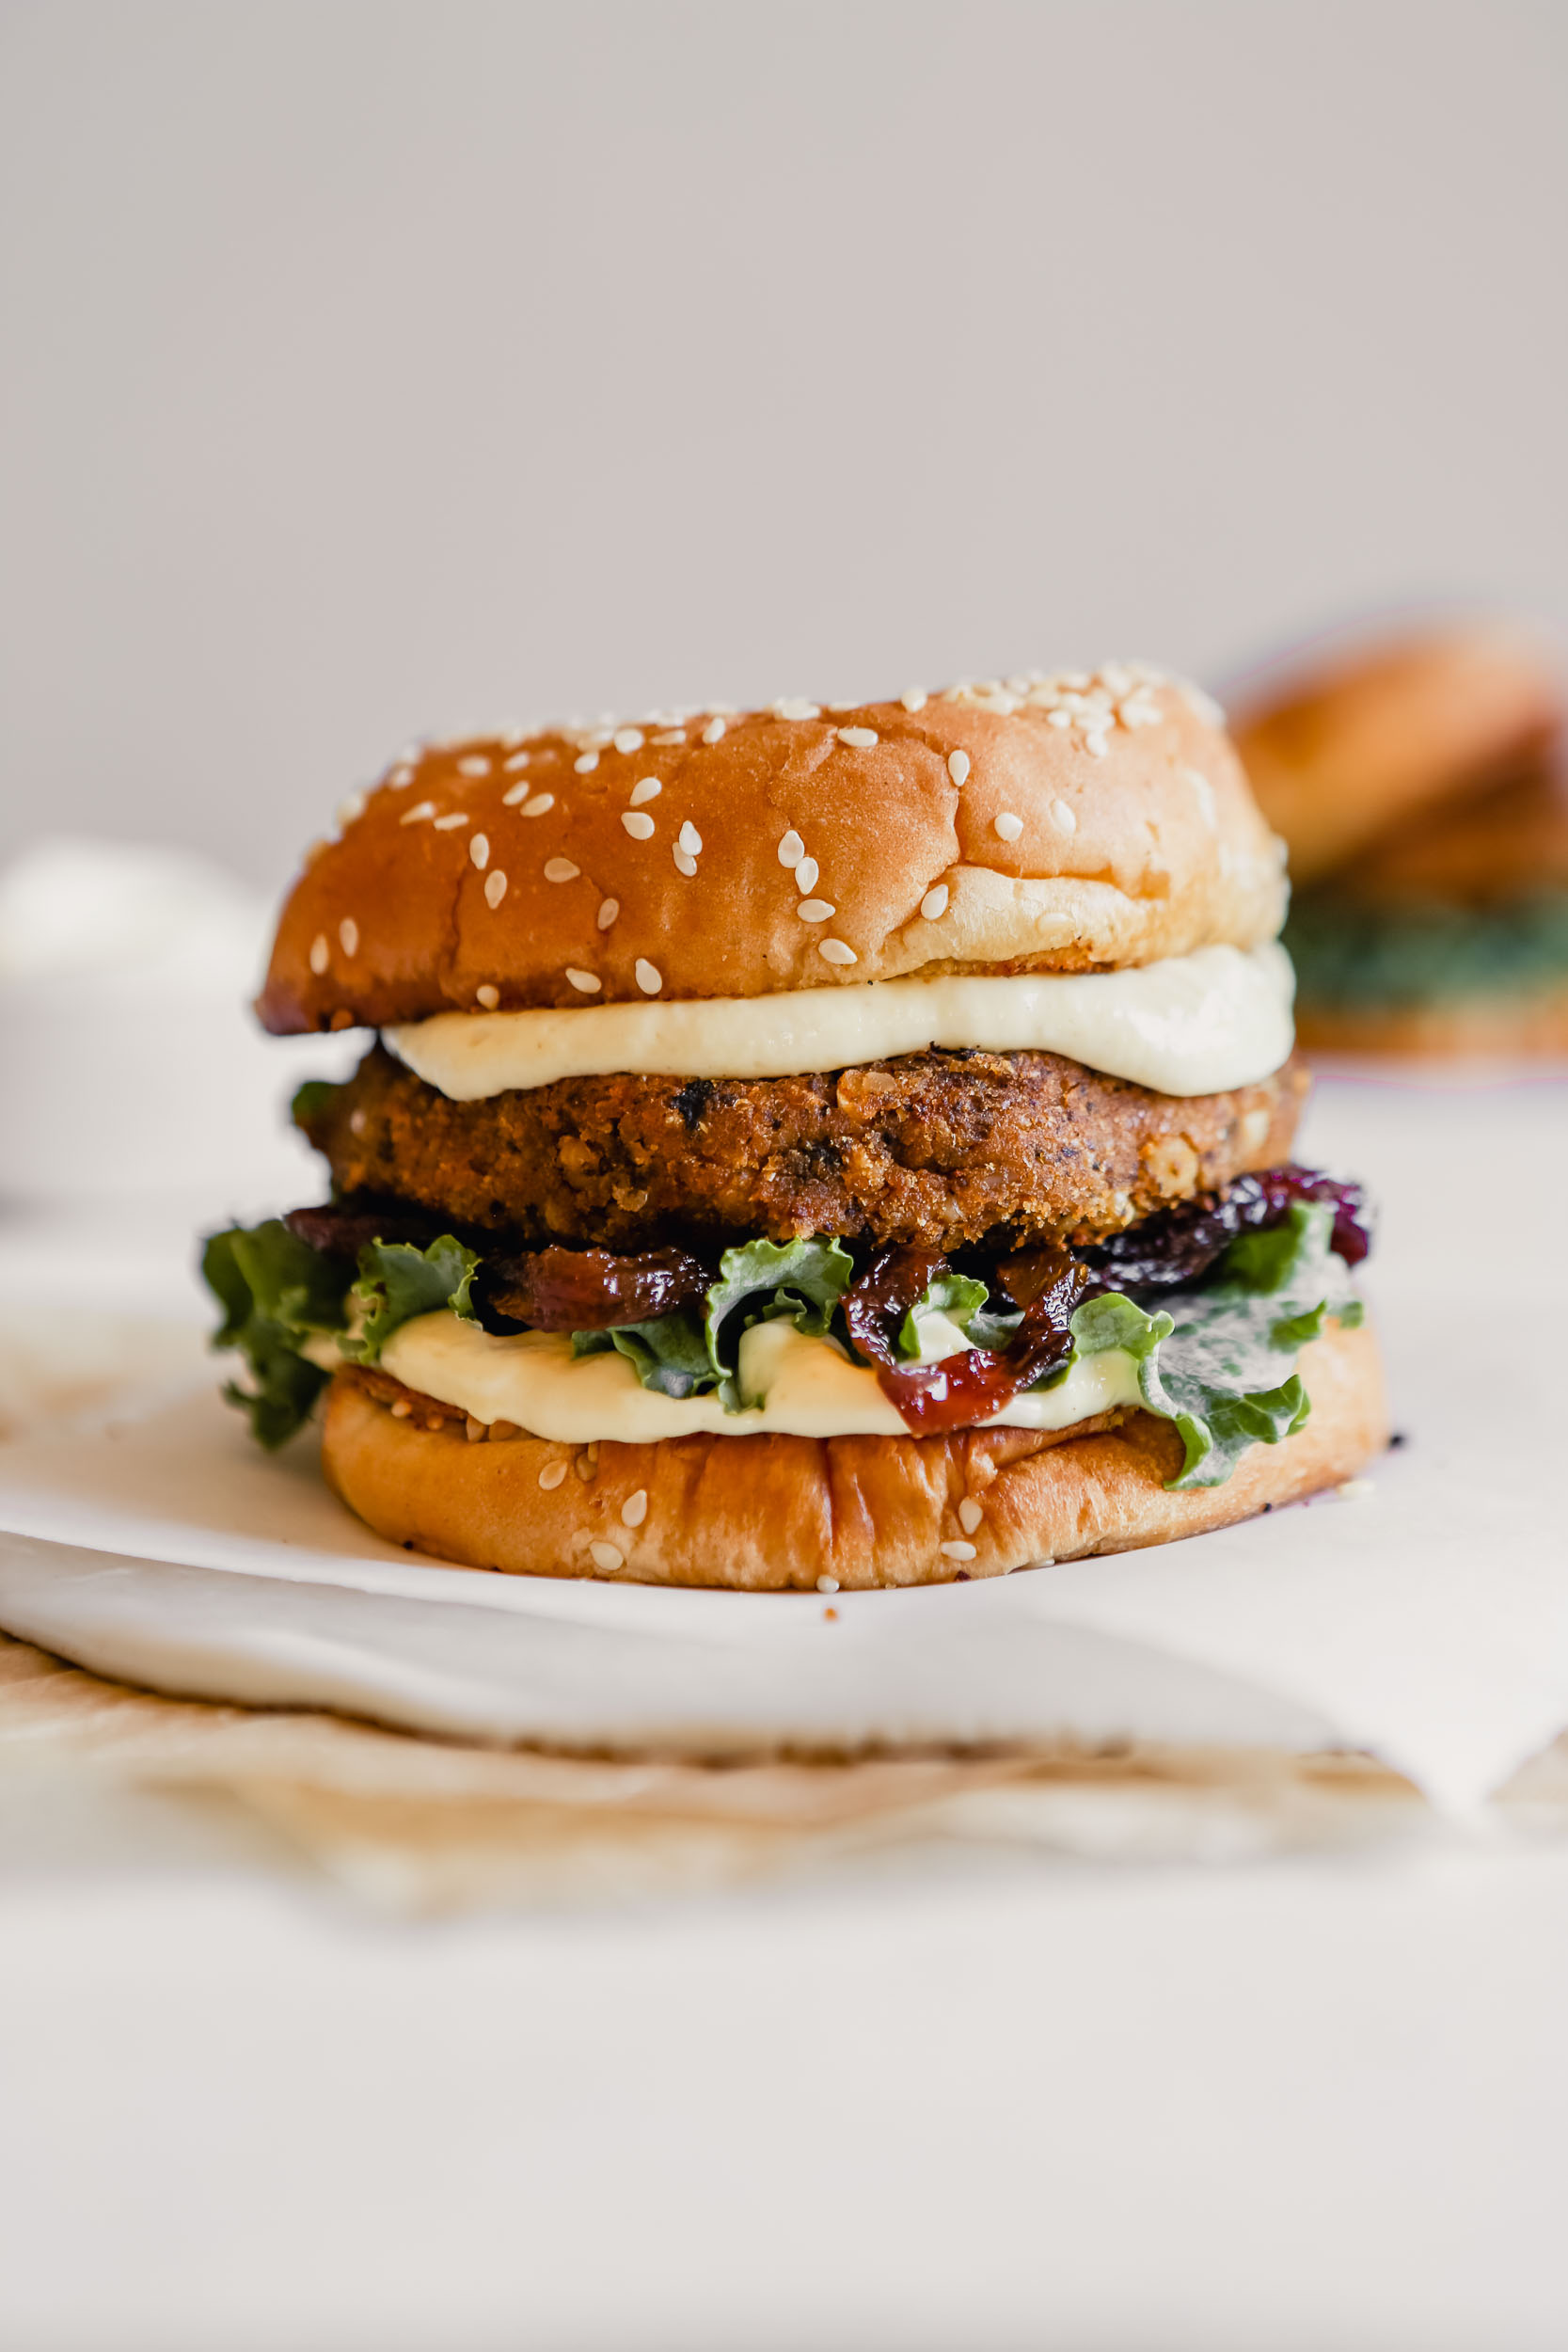 Photograph of a vegan mushroom veggie burger set on a white plate